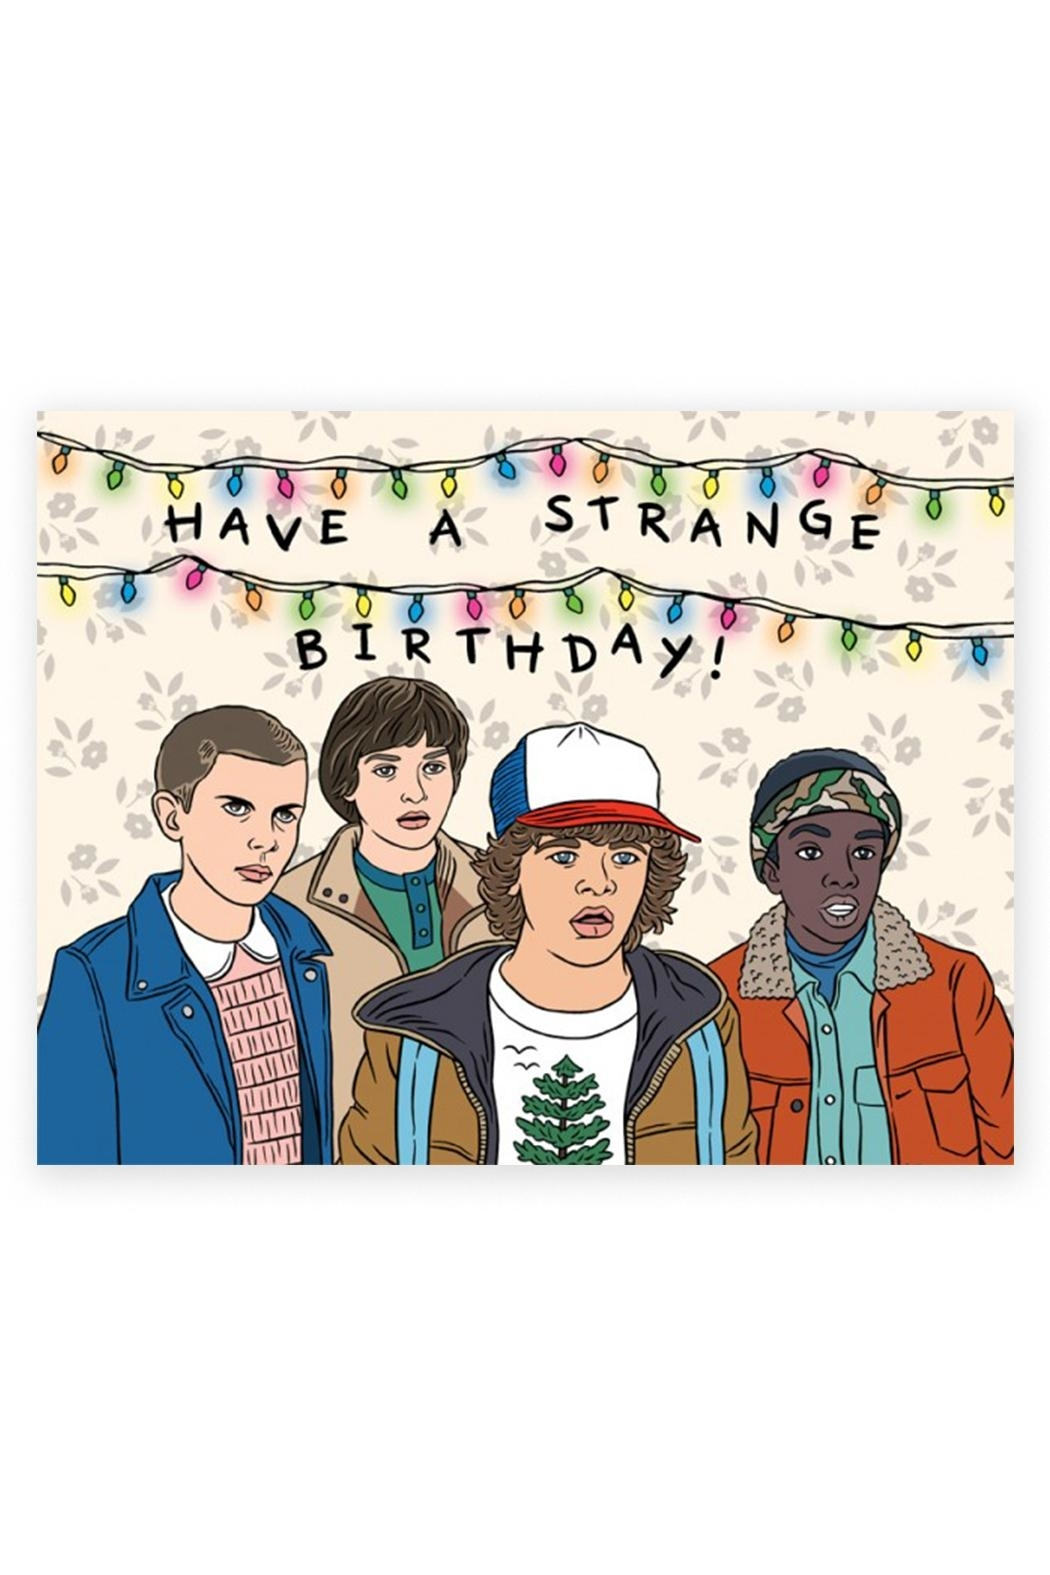 The Found Stranger Things Card - Main Image